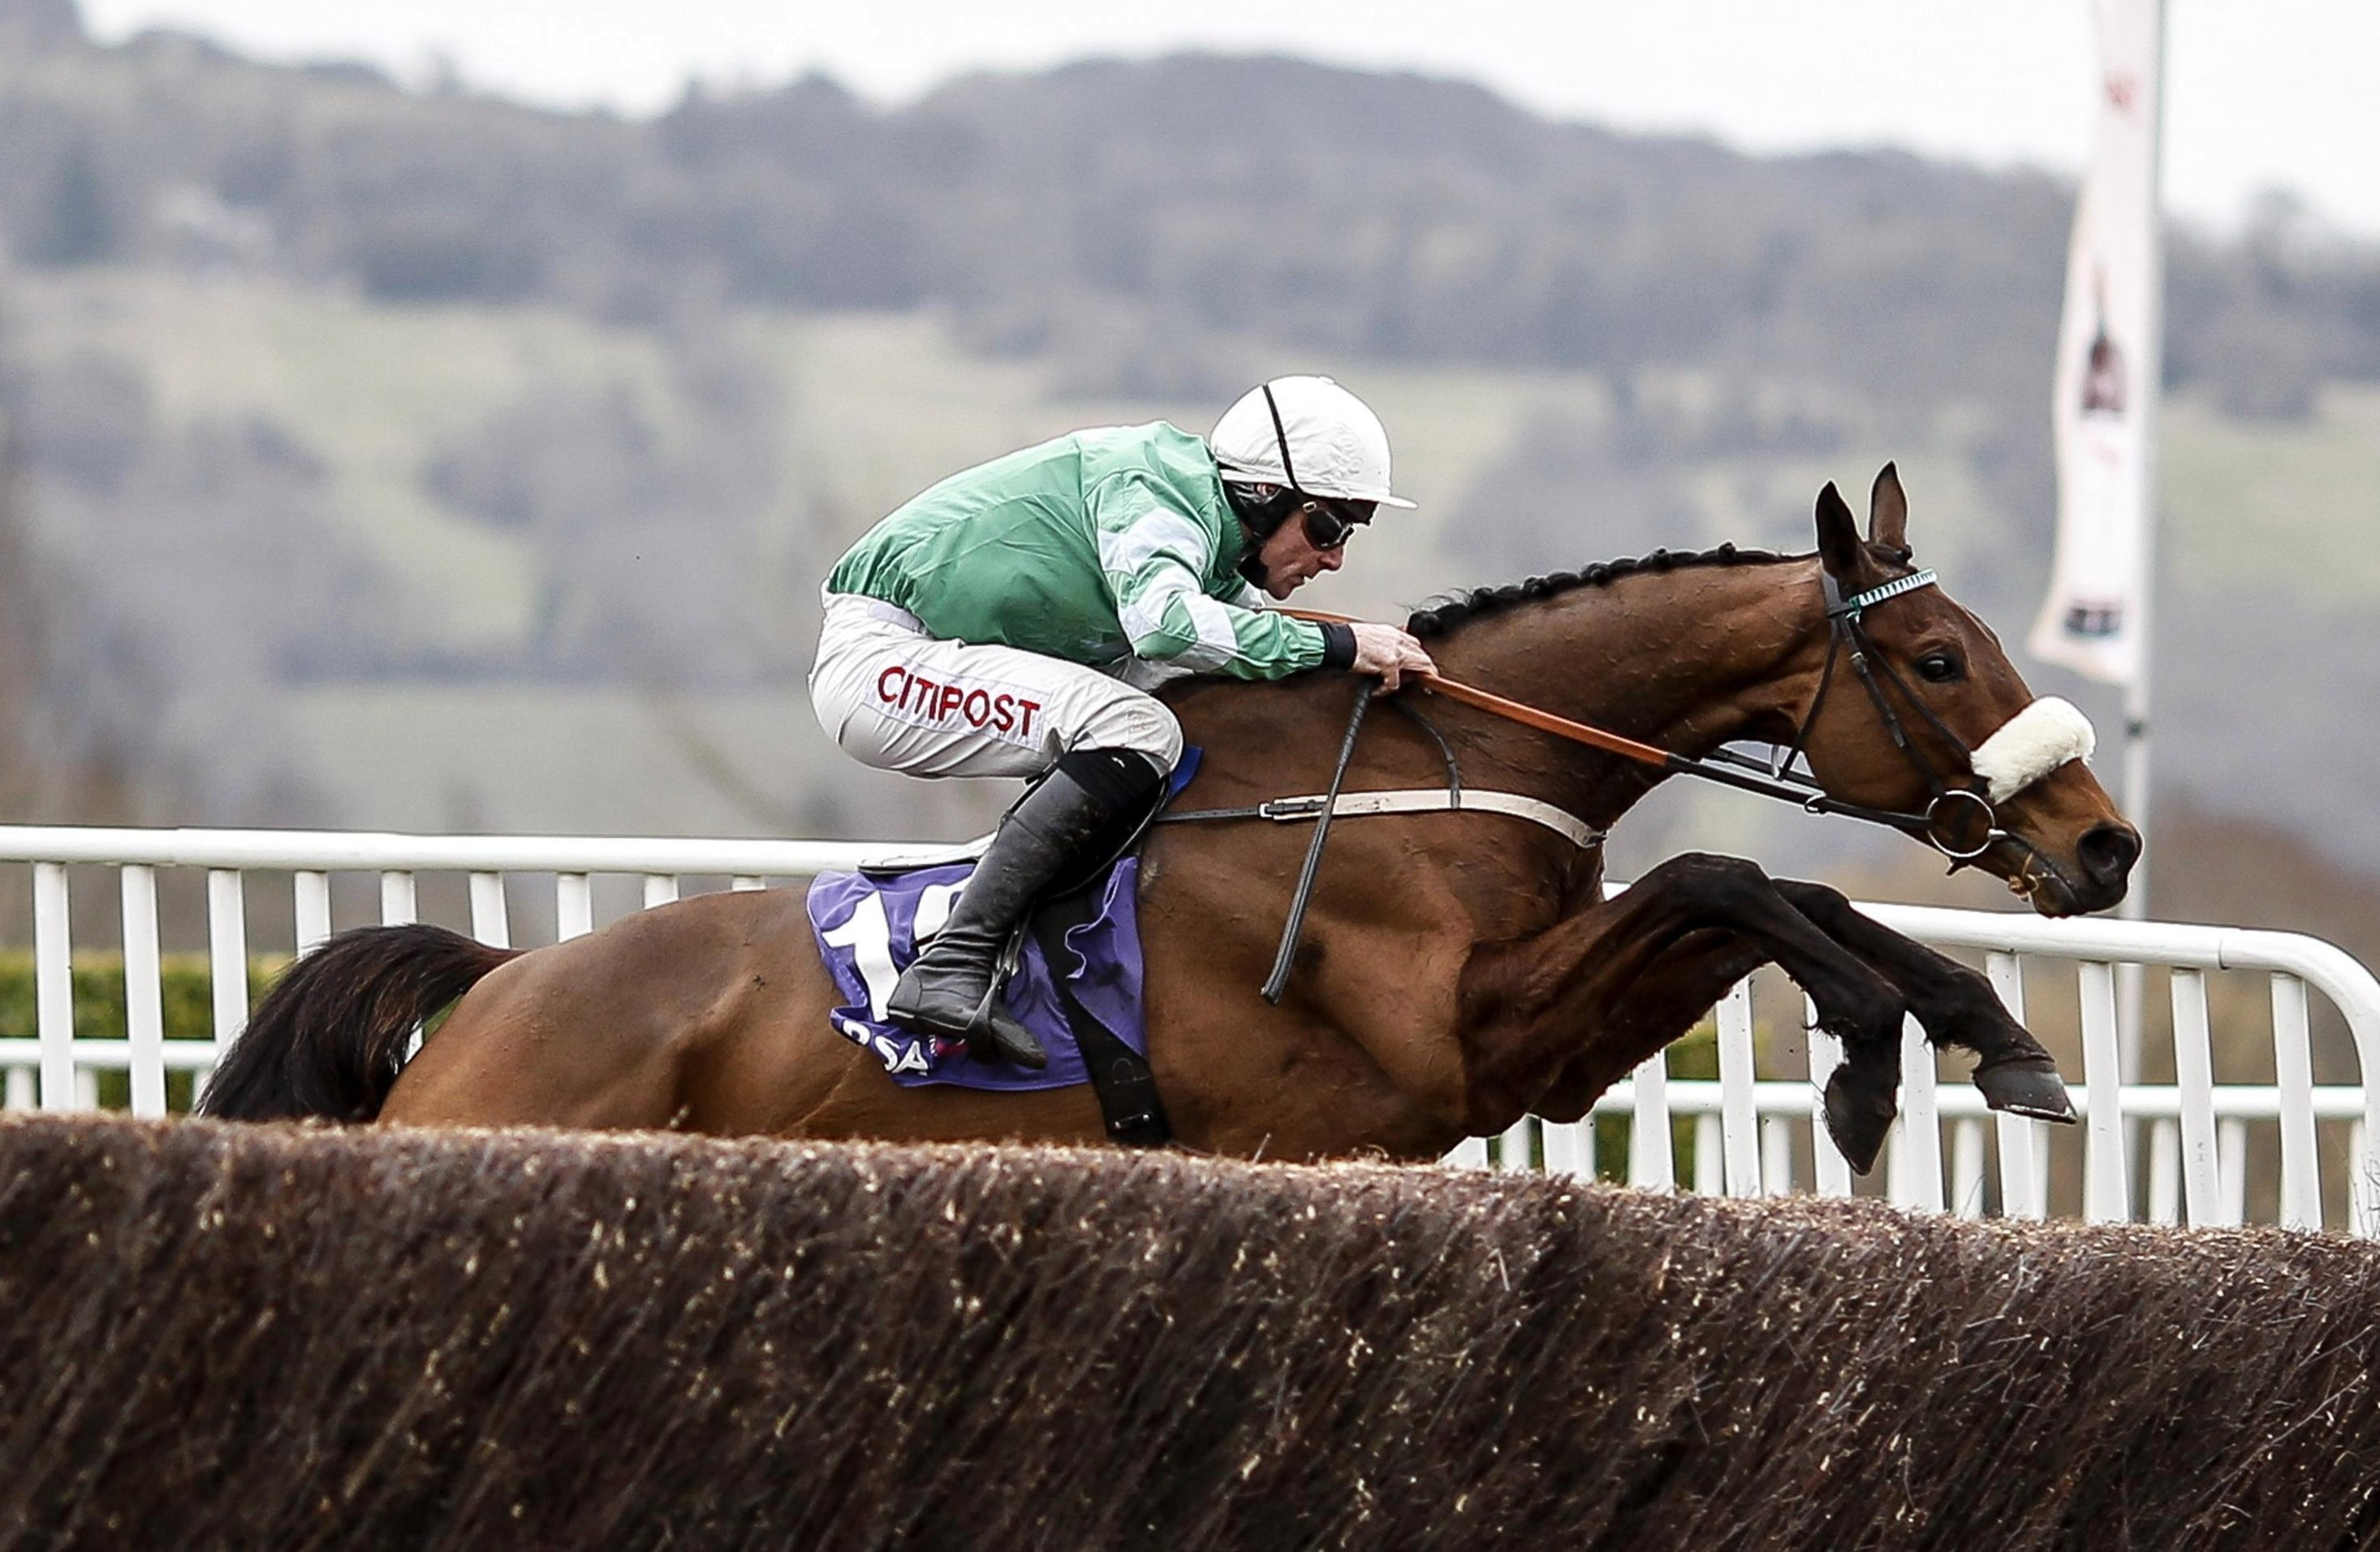 Gold Cup favourite Presenting Percy the star on show in Savills Chase